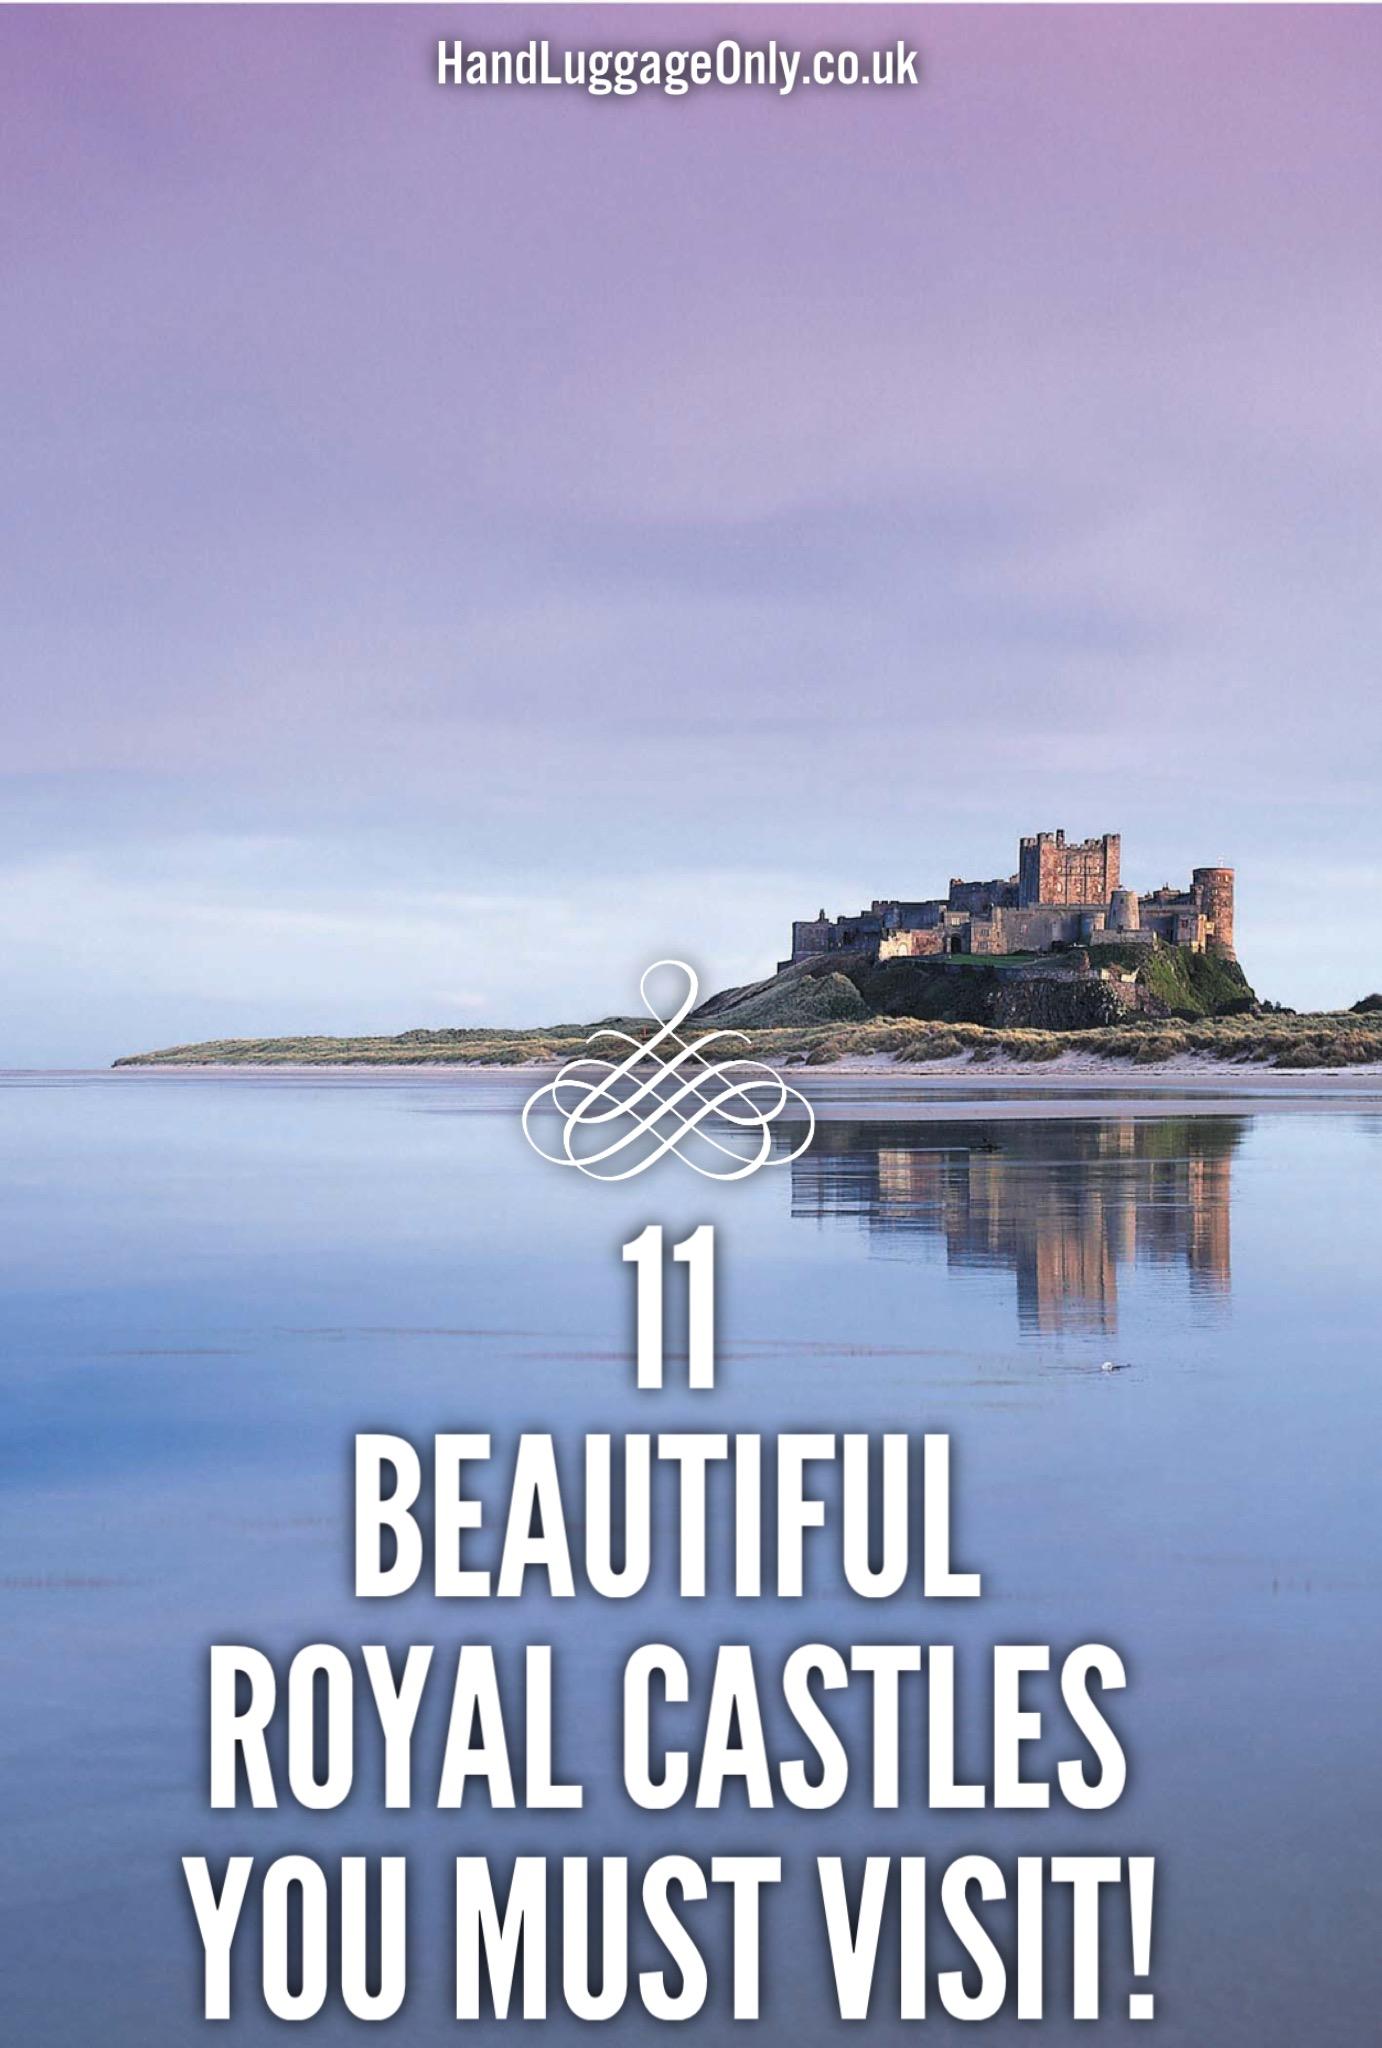 Royal Castles To Visit